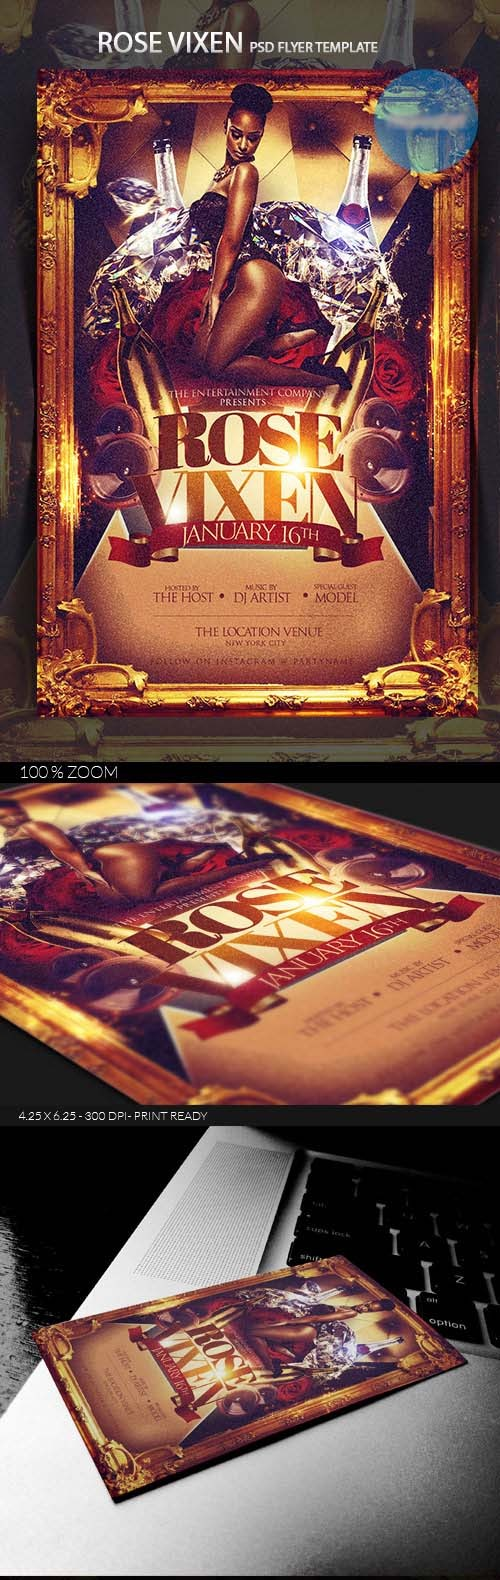 Flyer Template - Rose Vixen